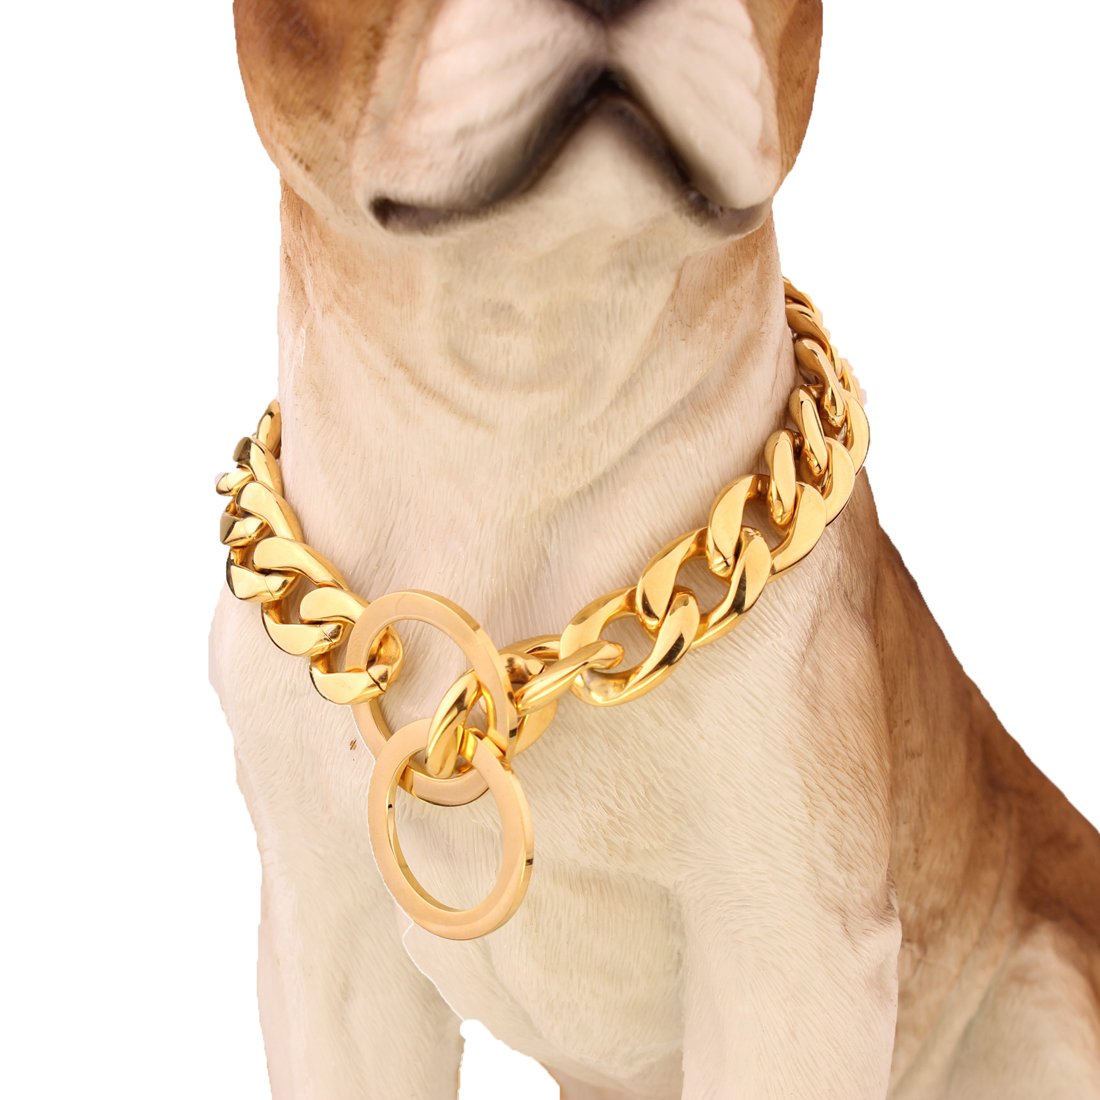 FANS JEWELRY Strong 13/15/19mm Gold Plated Stainless Steel NK Chain Dog Collar Choker Necklace 12-36inch(20inches,19mm) by FANS JEWELRY